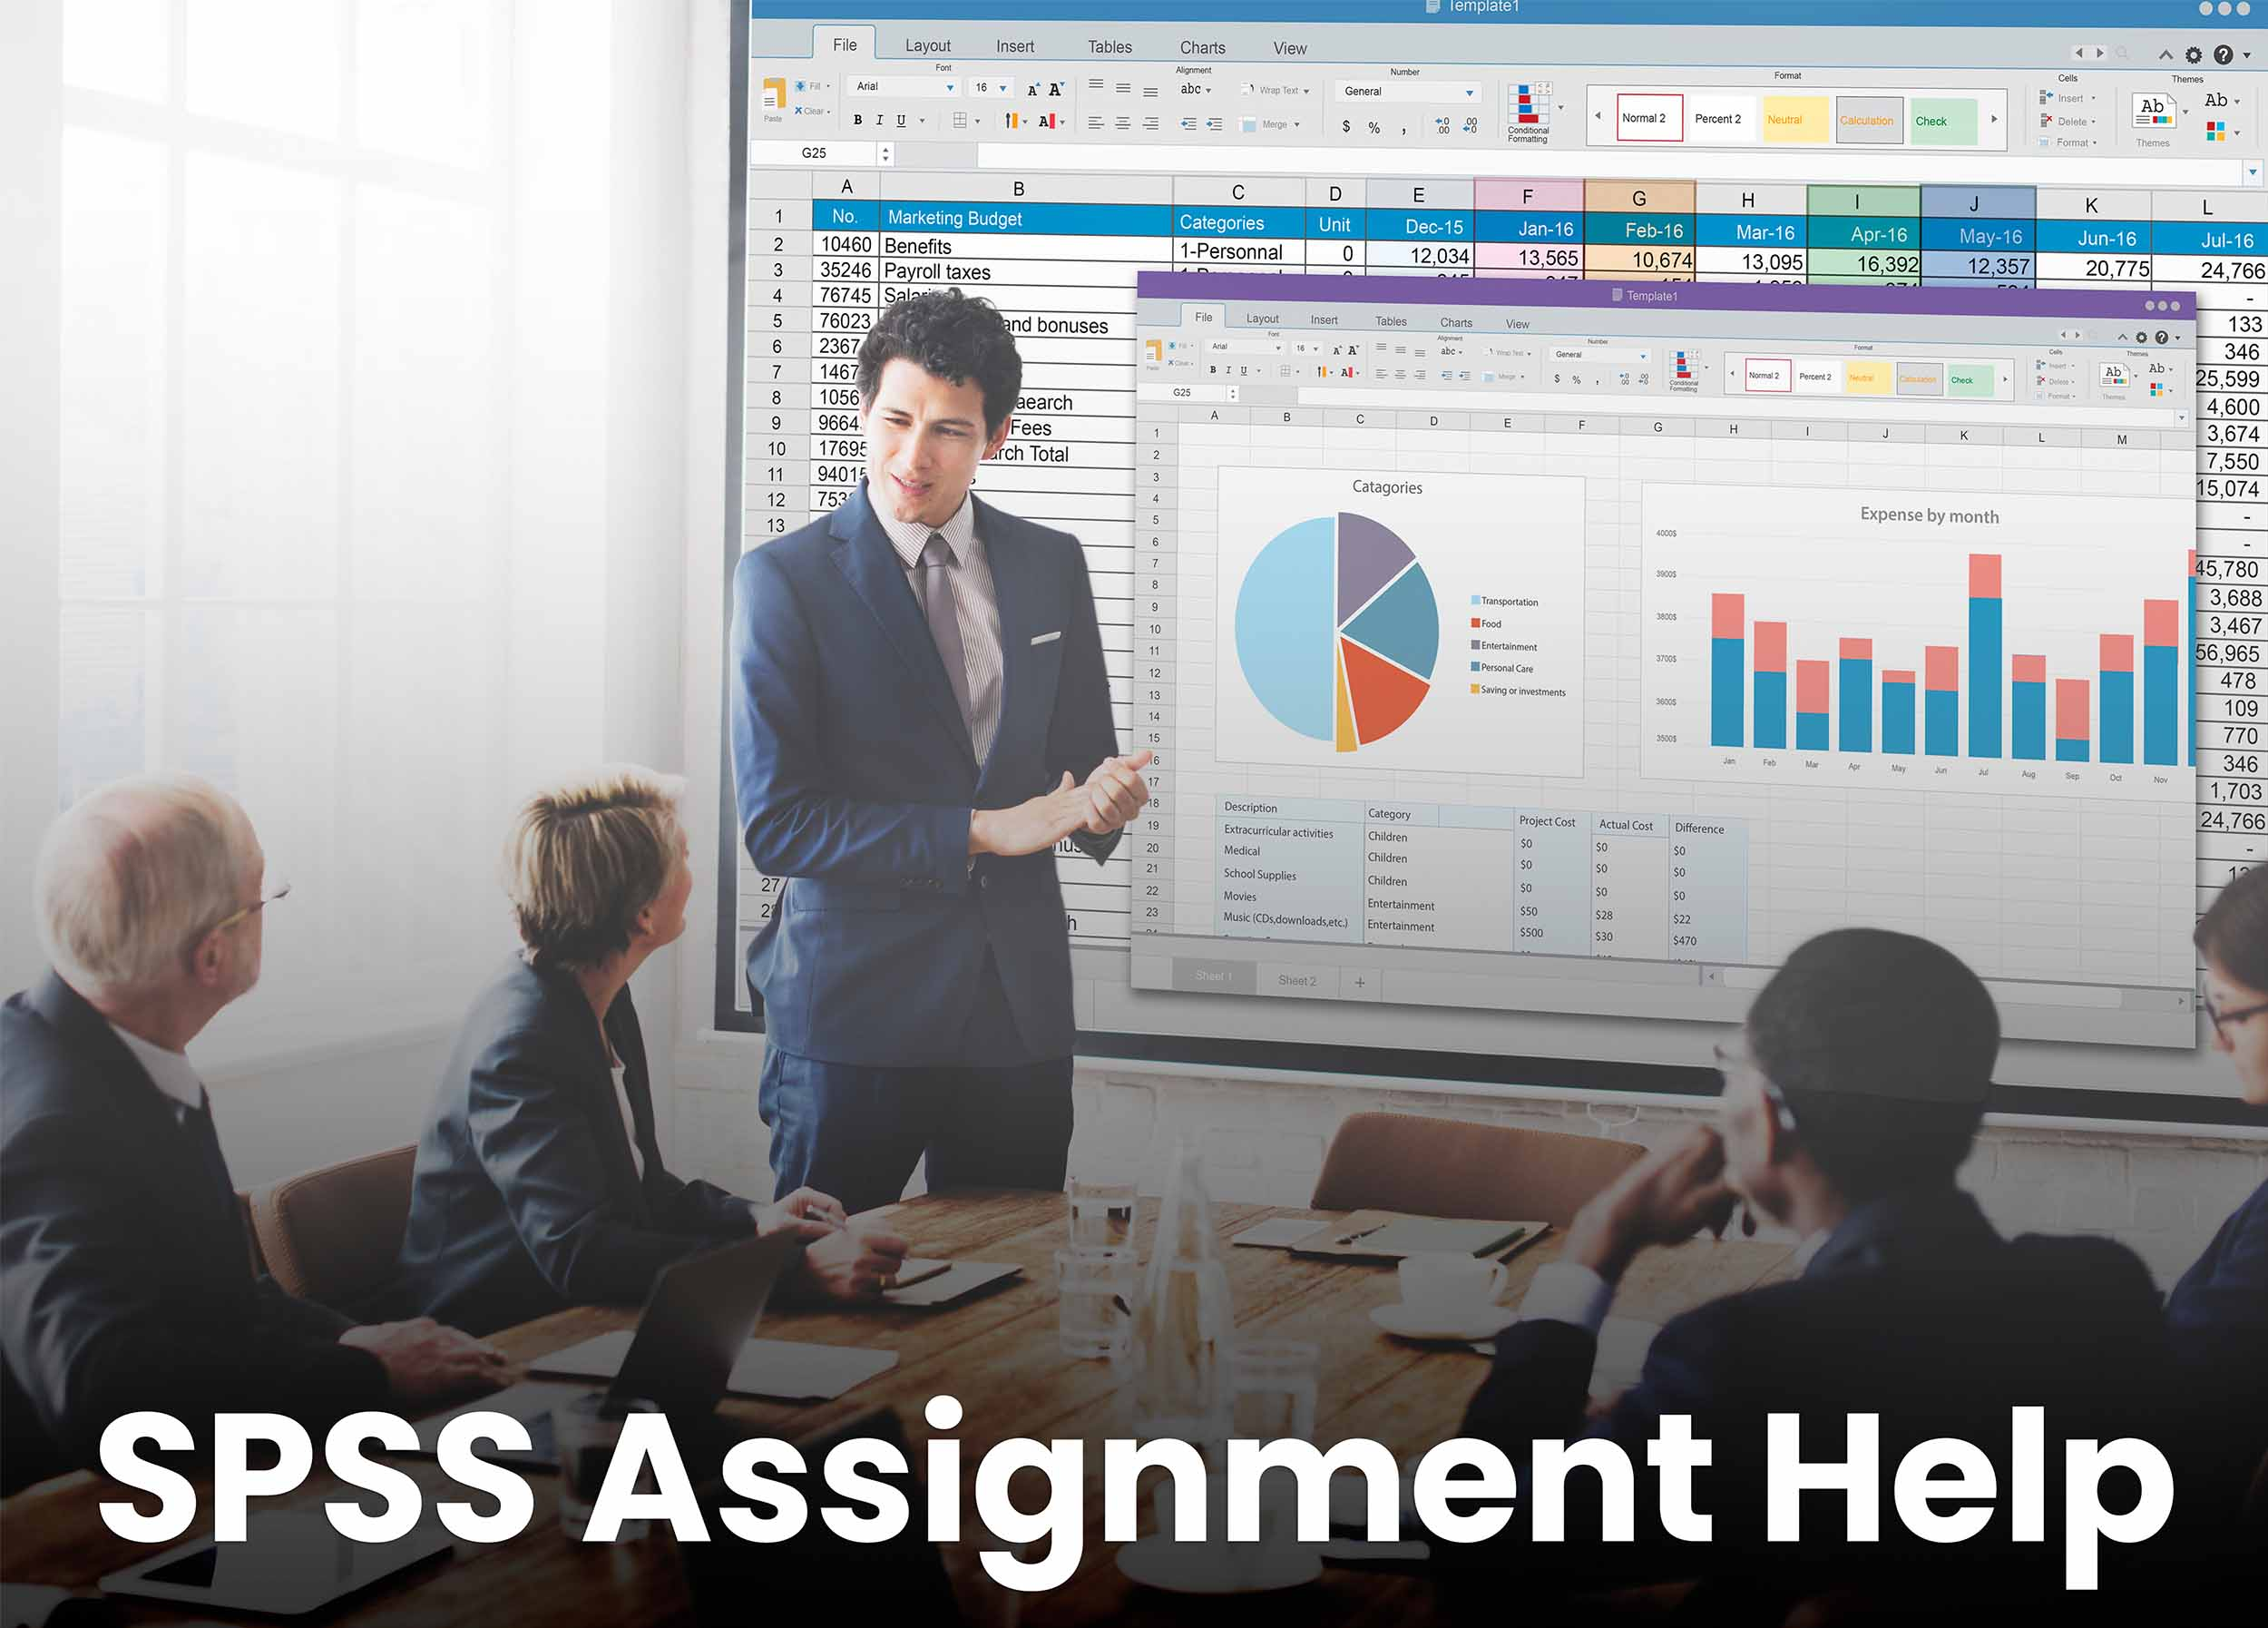 Statistical Consulting and Assignment Help Service SPSS Tutor